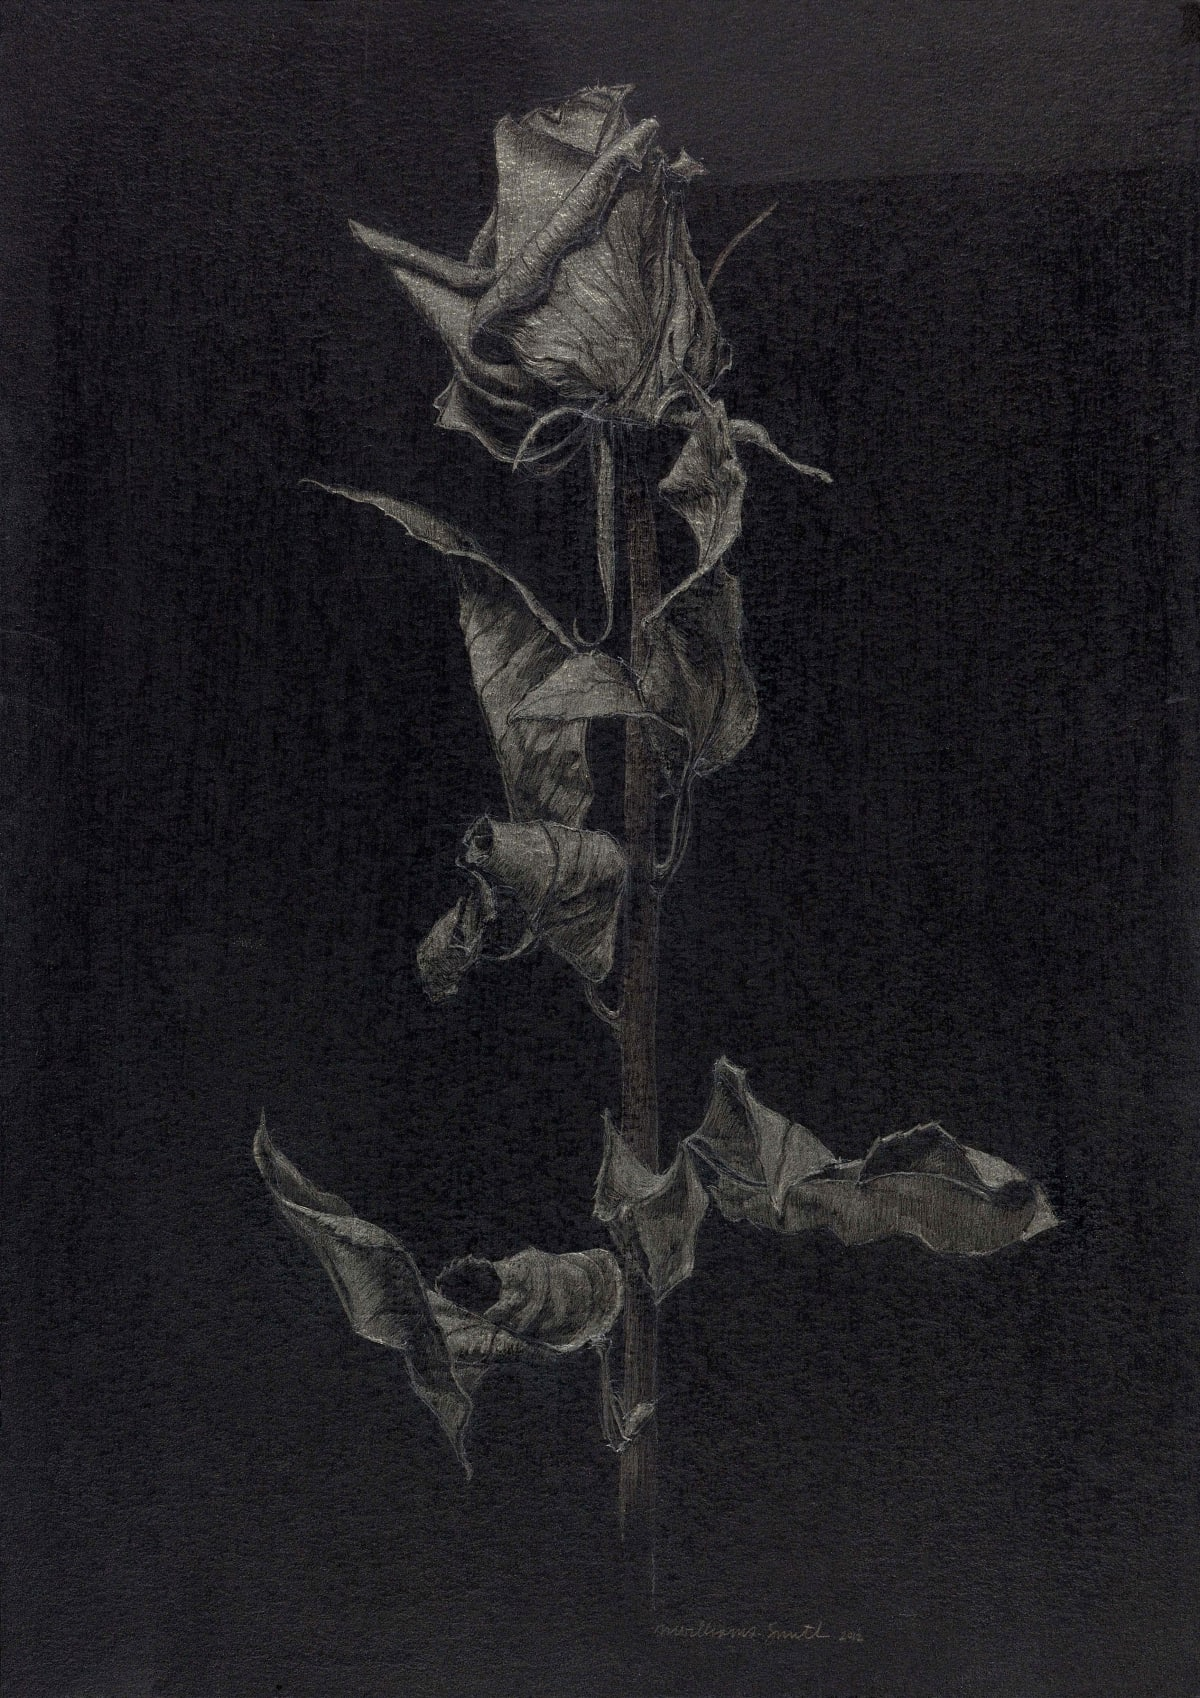 Marjorie Williams-Smith Clairvoyant , 2012 Silverpoint on Black Acrylic Gesso 11 3/16 x 8